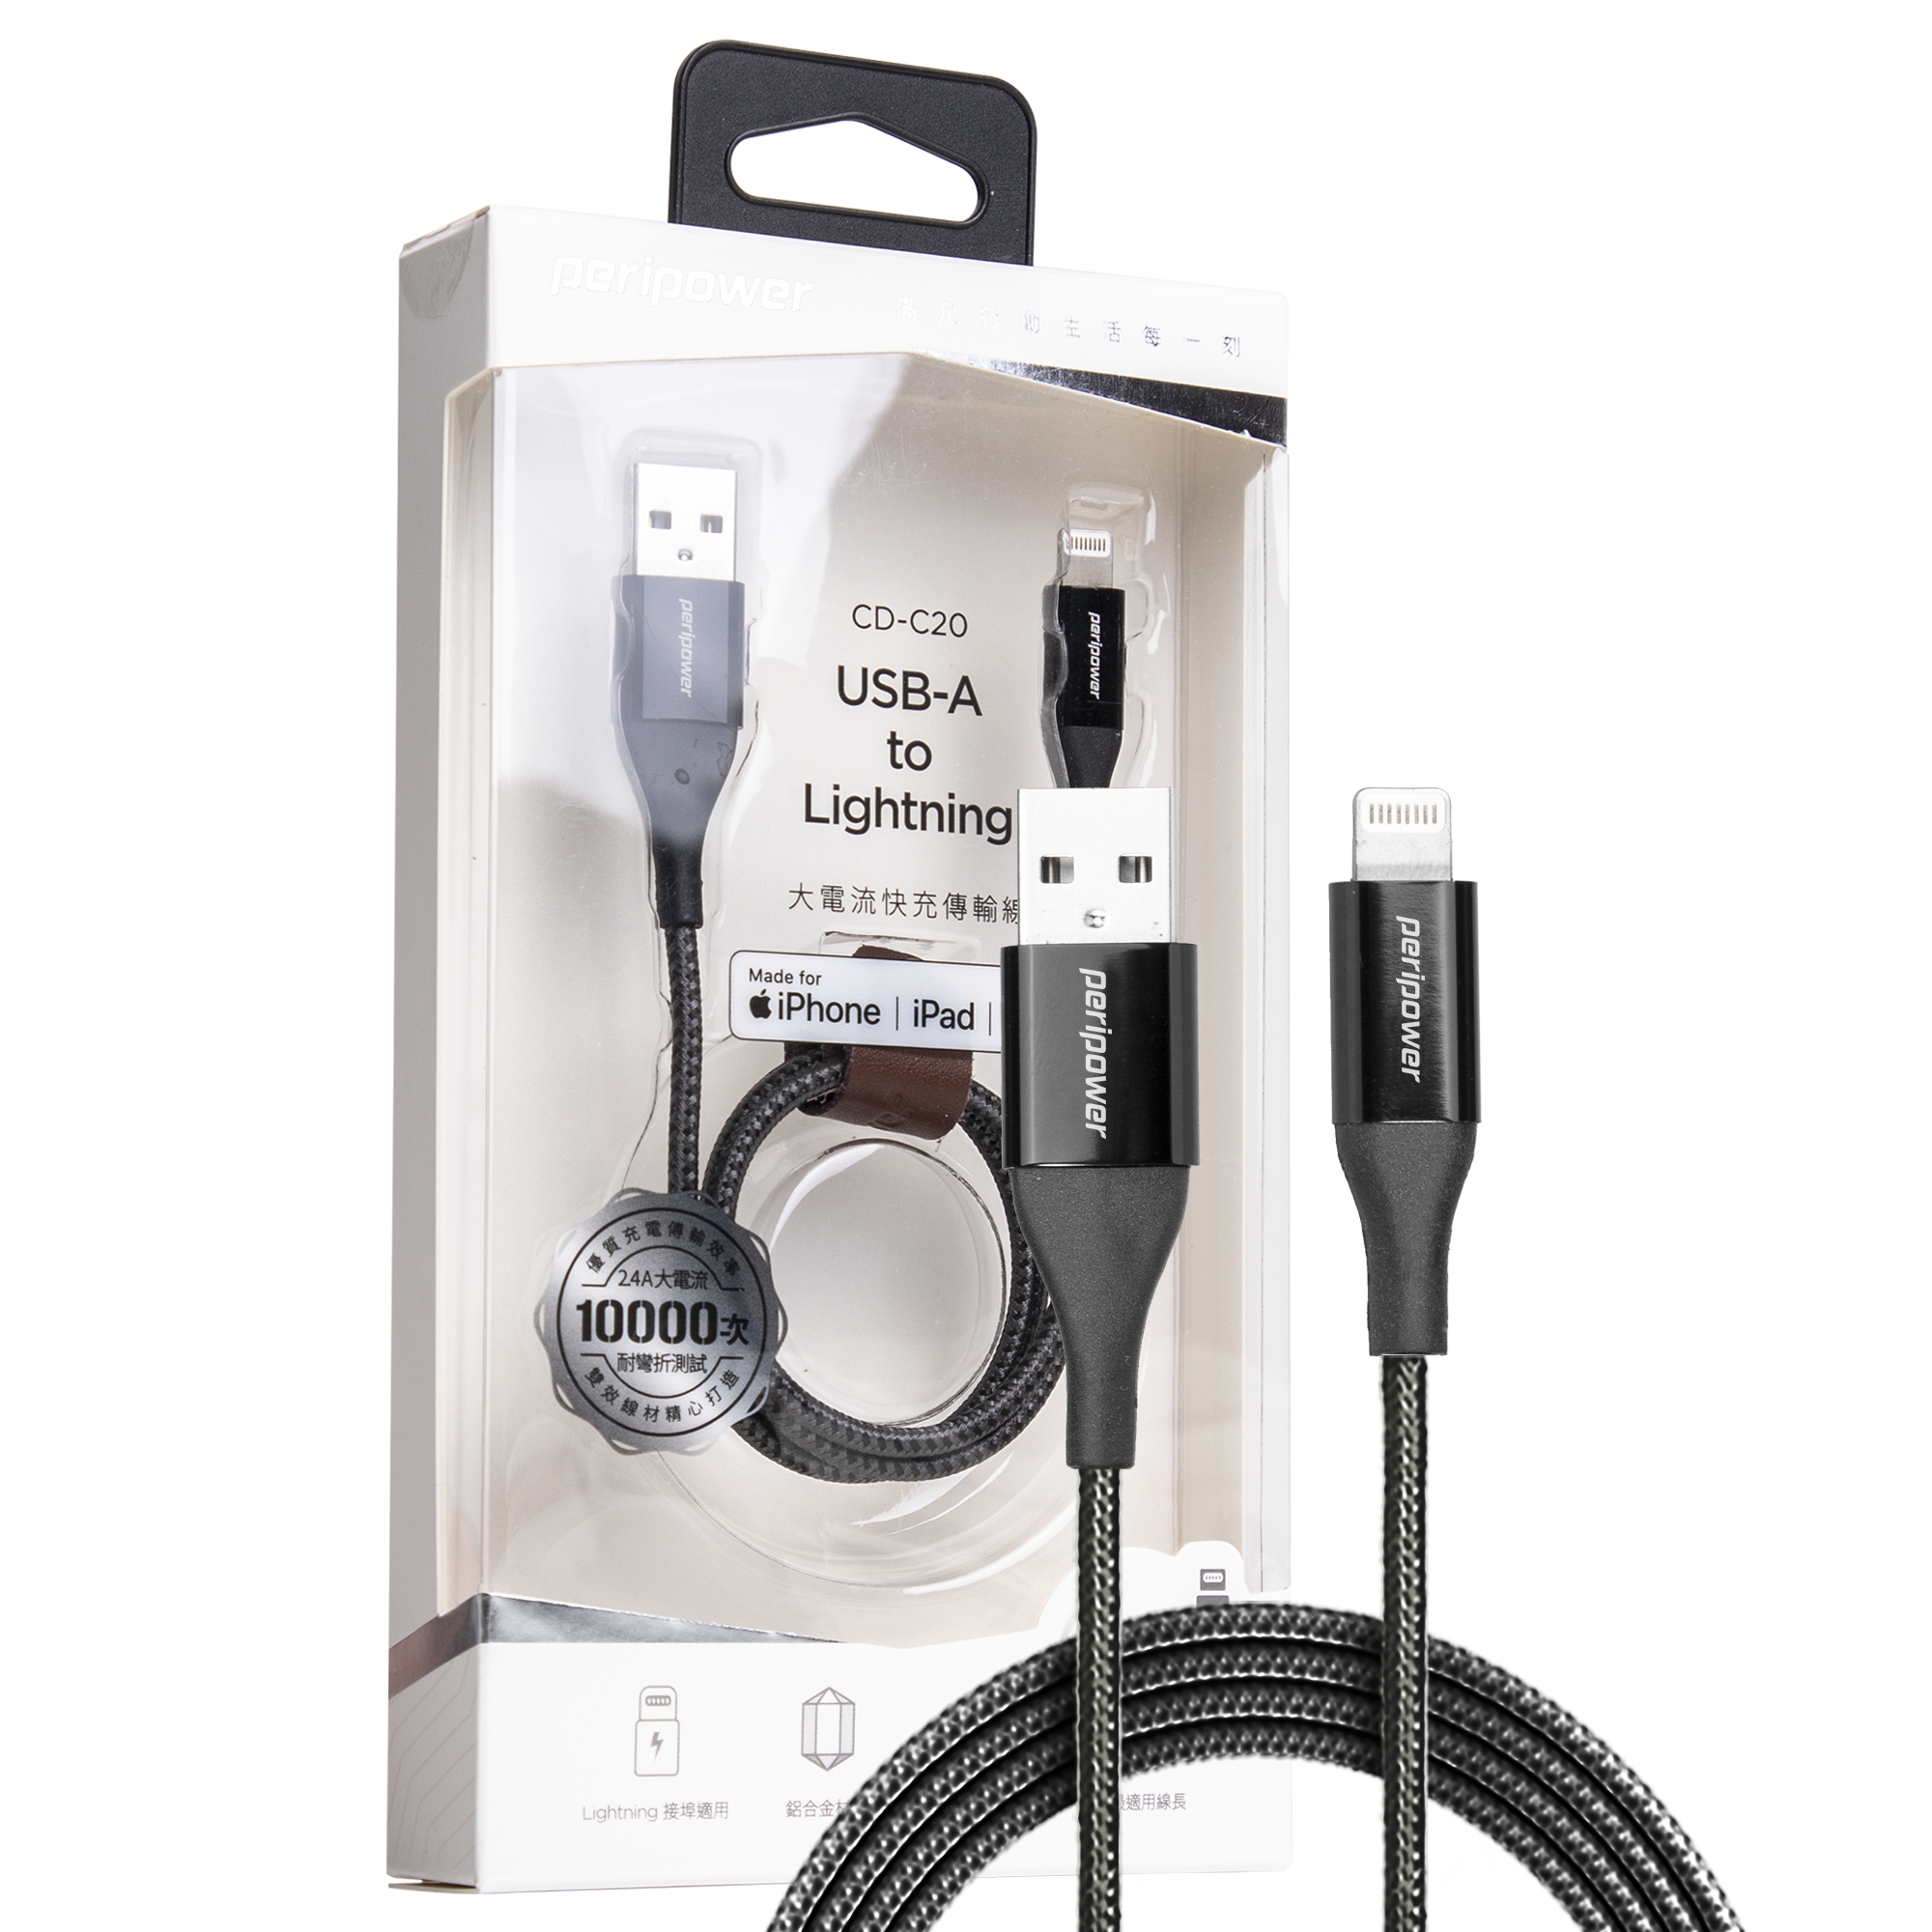 USB-A to Lightning Cable